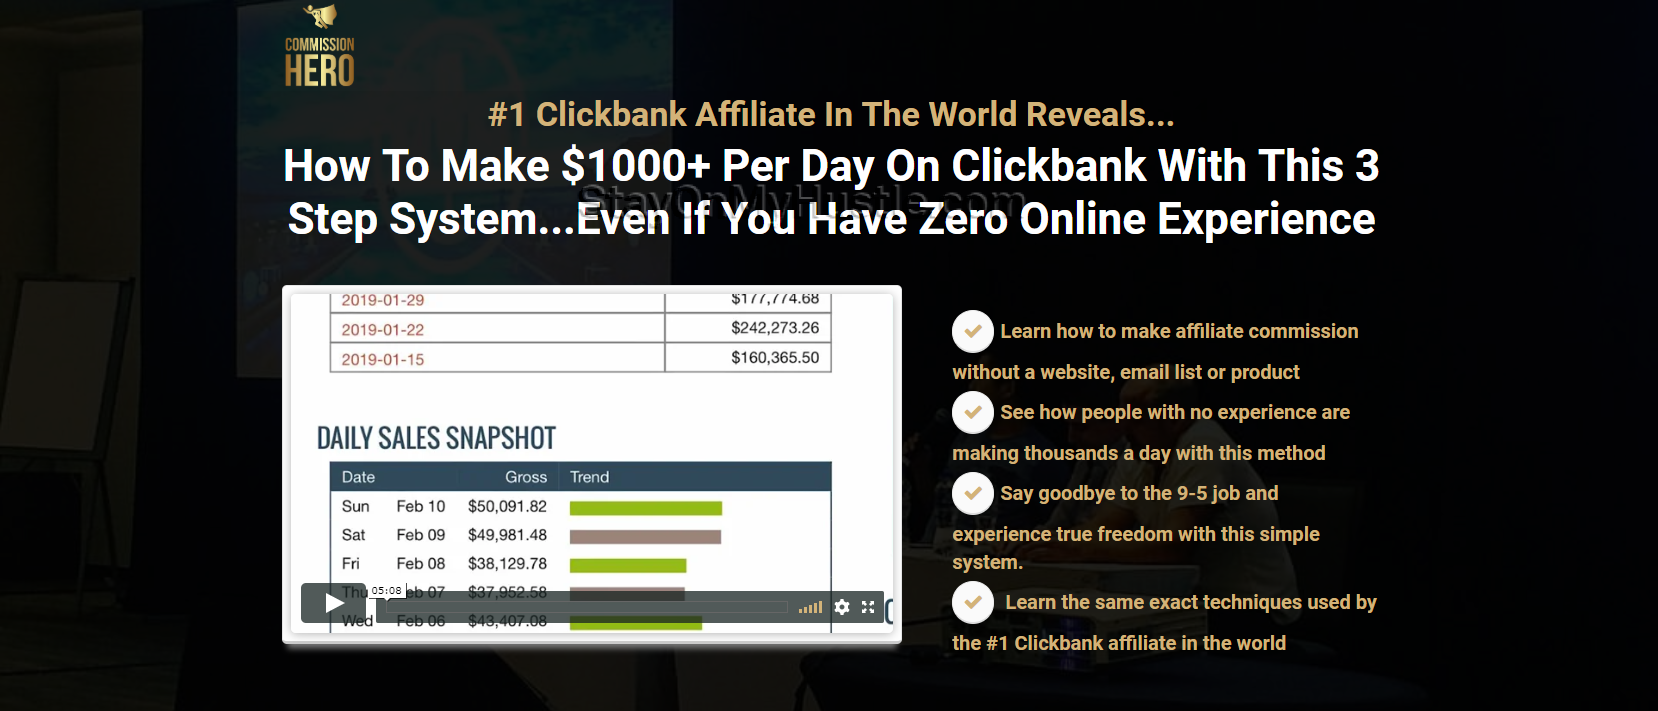 Commission Hero Affiliate Marketing Store